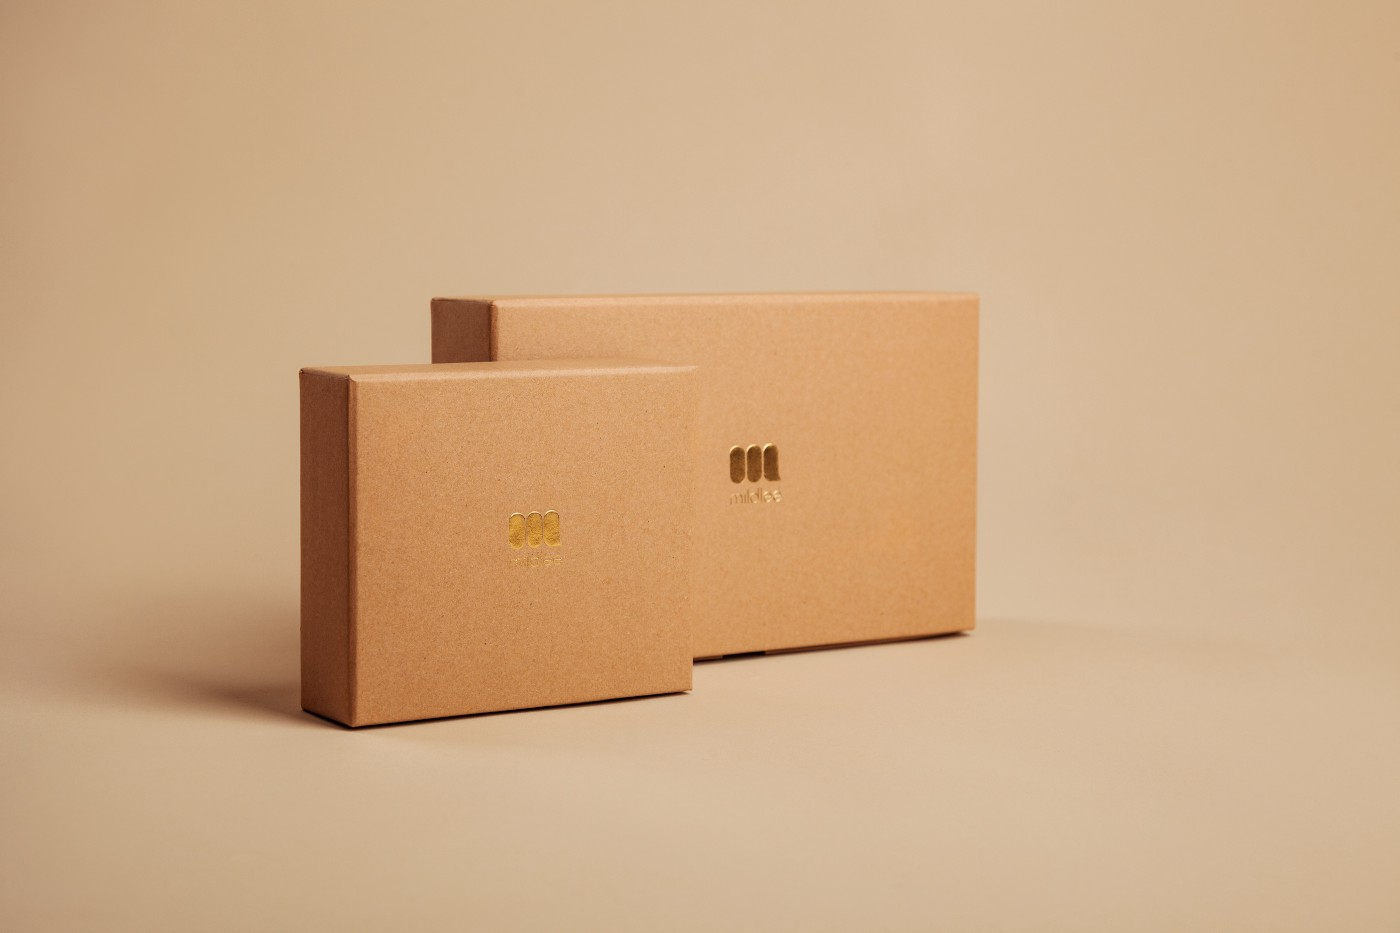 Cover image from Unsplash that shows two cardboard boxes